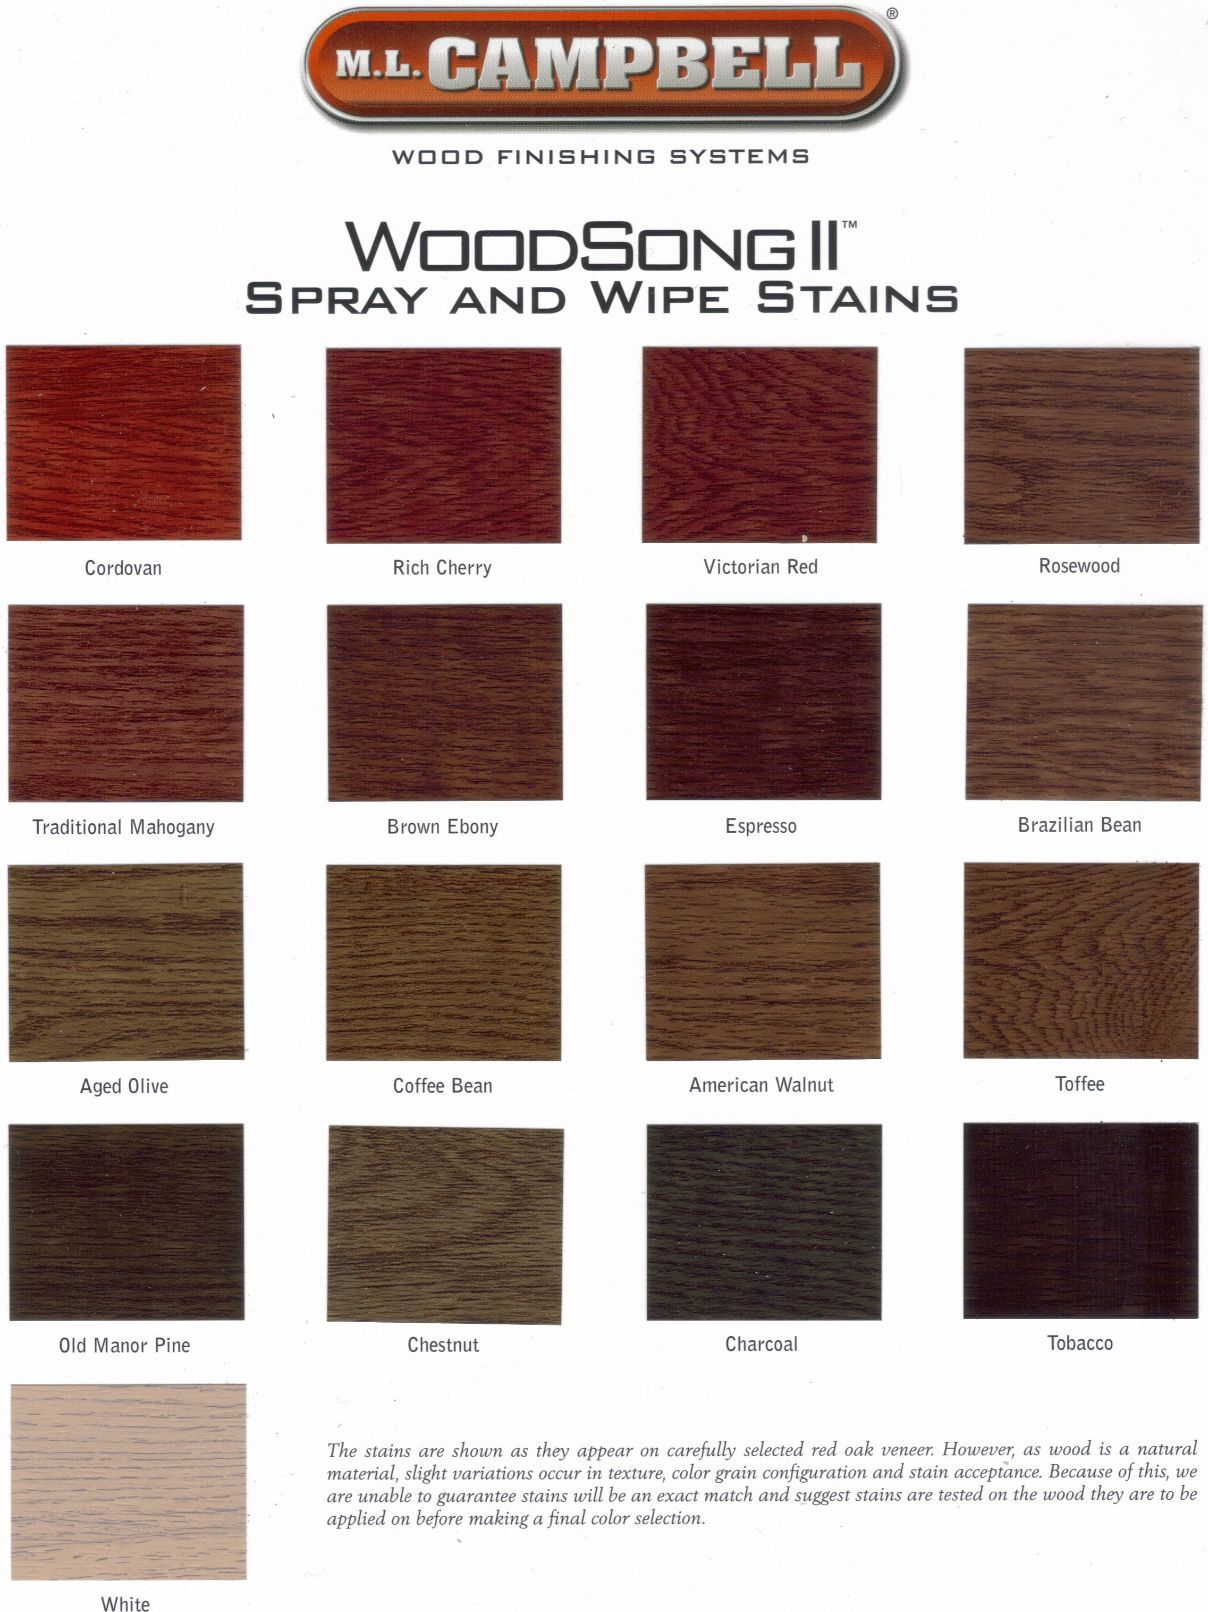 kitchen cabinet spray paint peerless faucet repair old manor pine ml campbell woodsong ii stain colours 2 ...